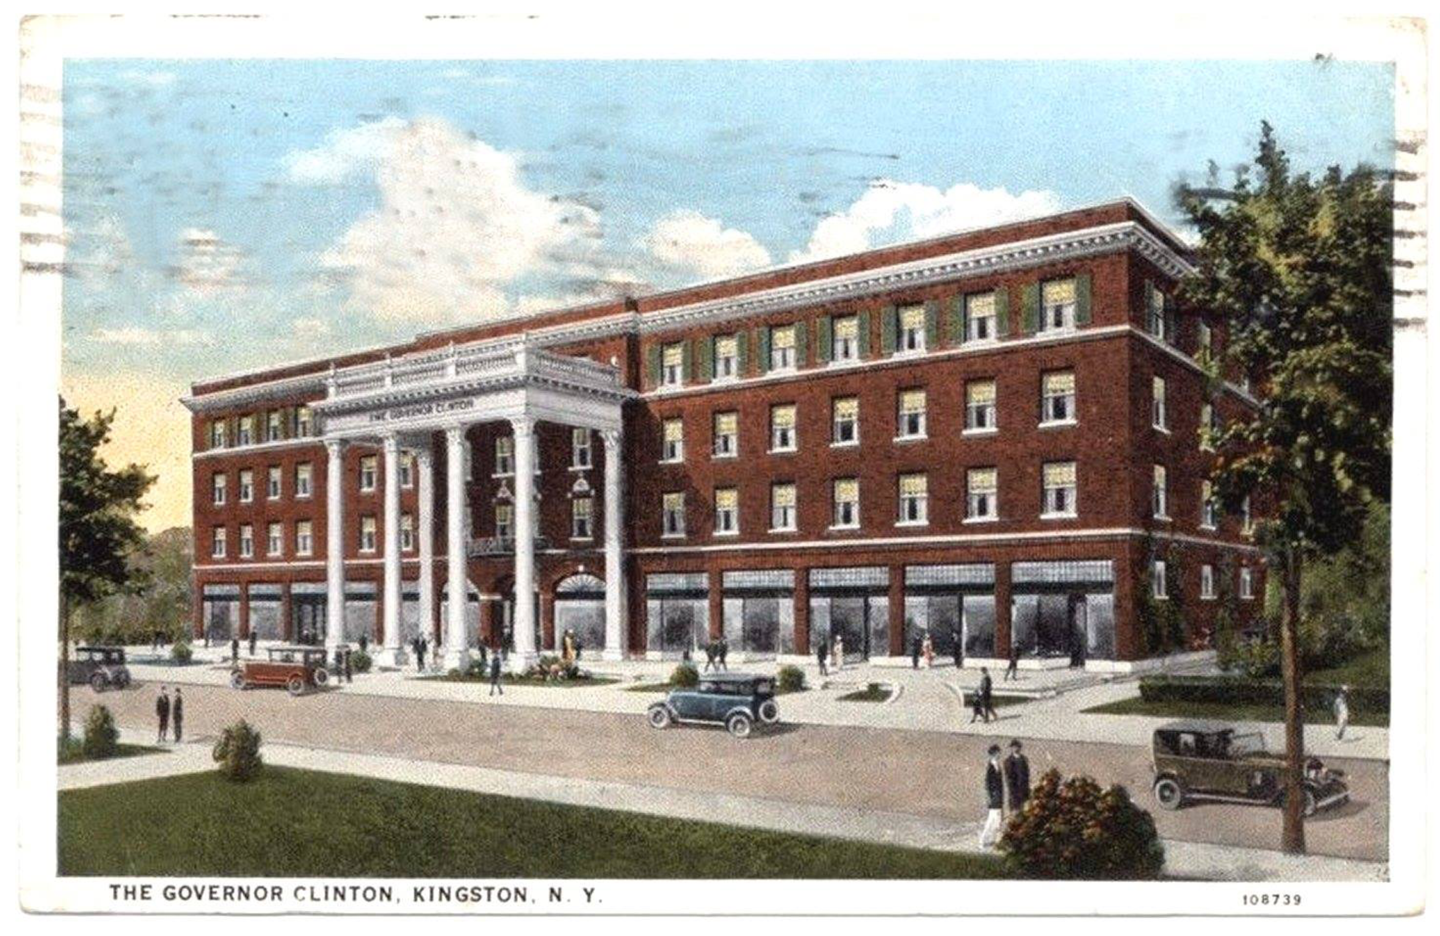 The former Governor Clinton Hotel is at 1 Albany Ave., Kingston